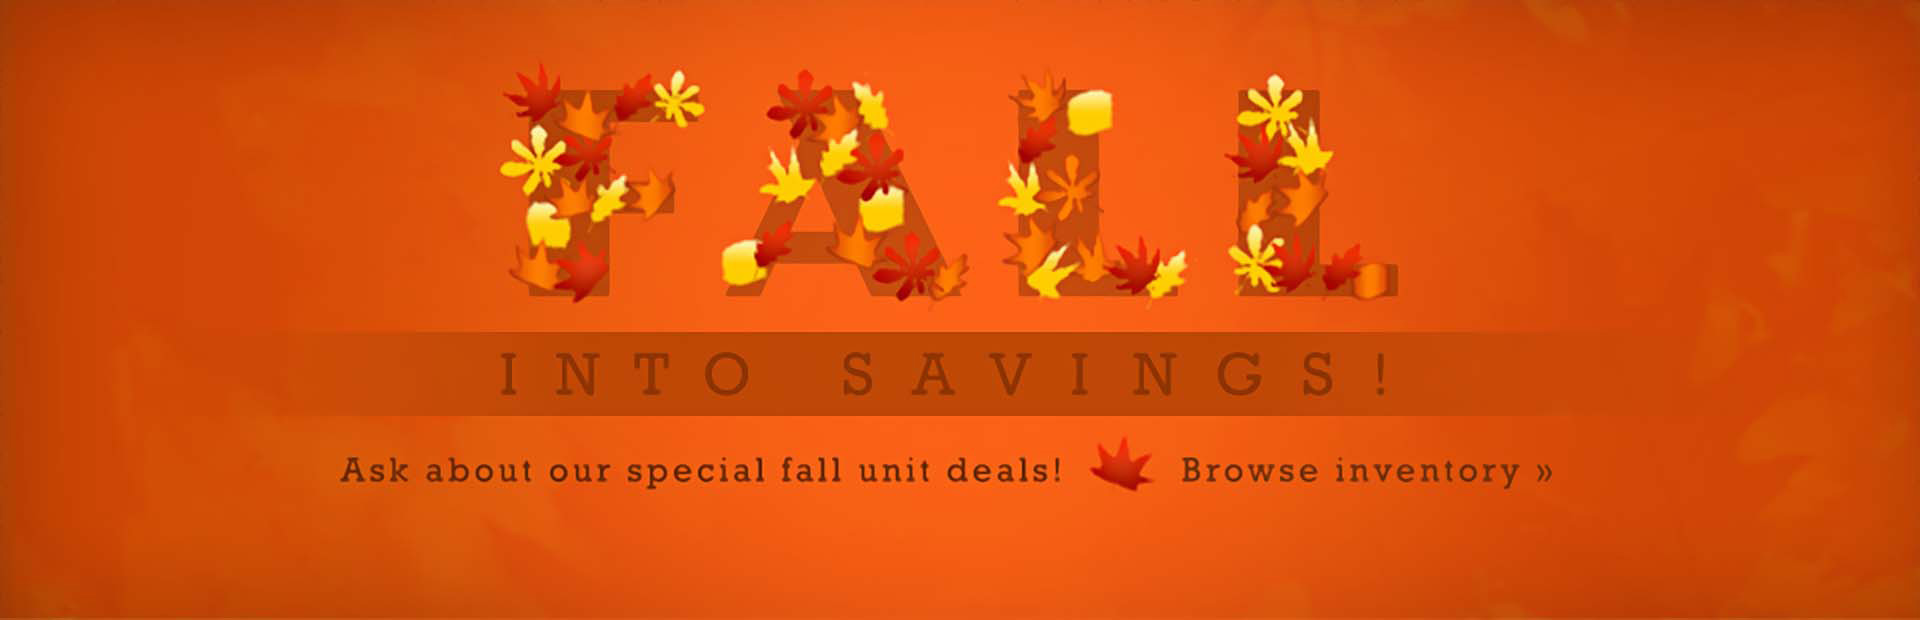 Fall into savings! Ask about our special fall unit deals! Click here to browse our inventory.